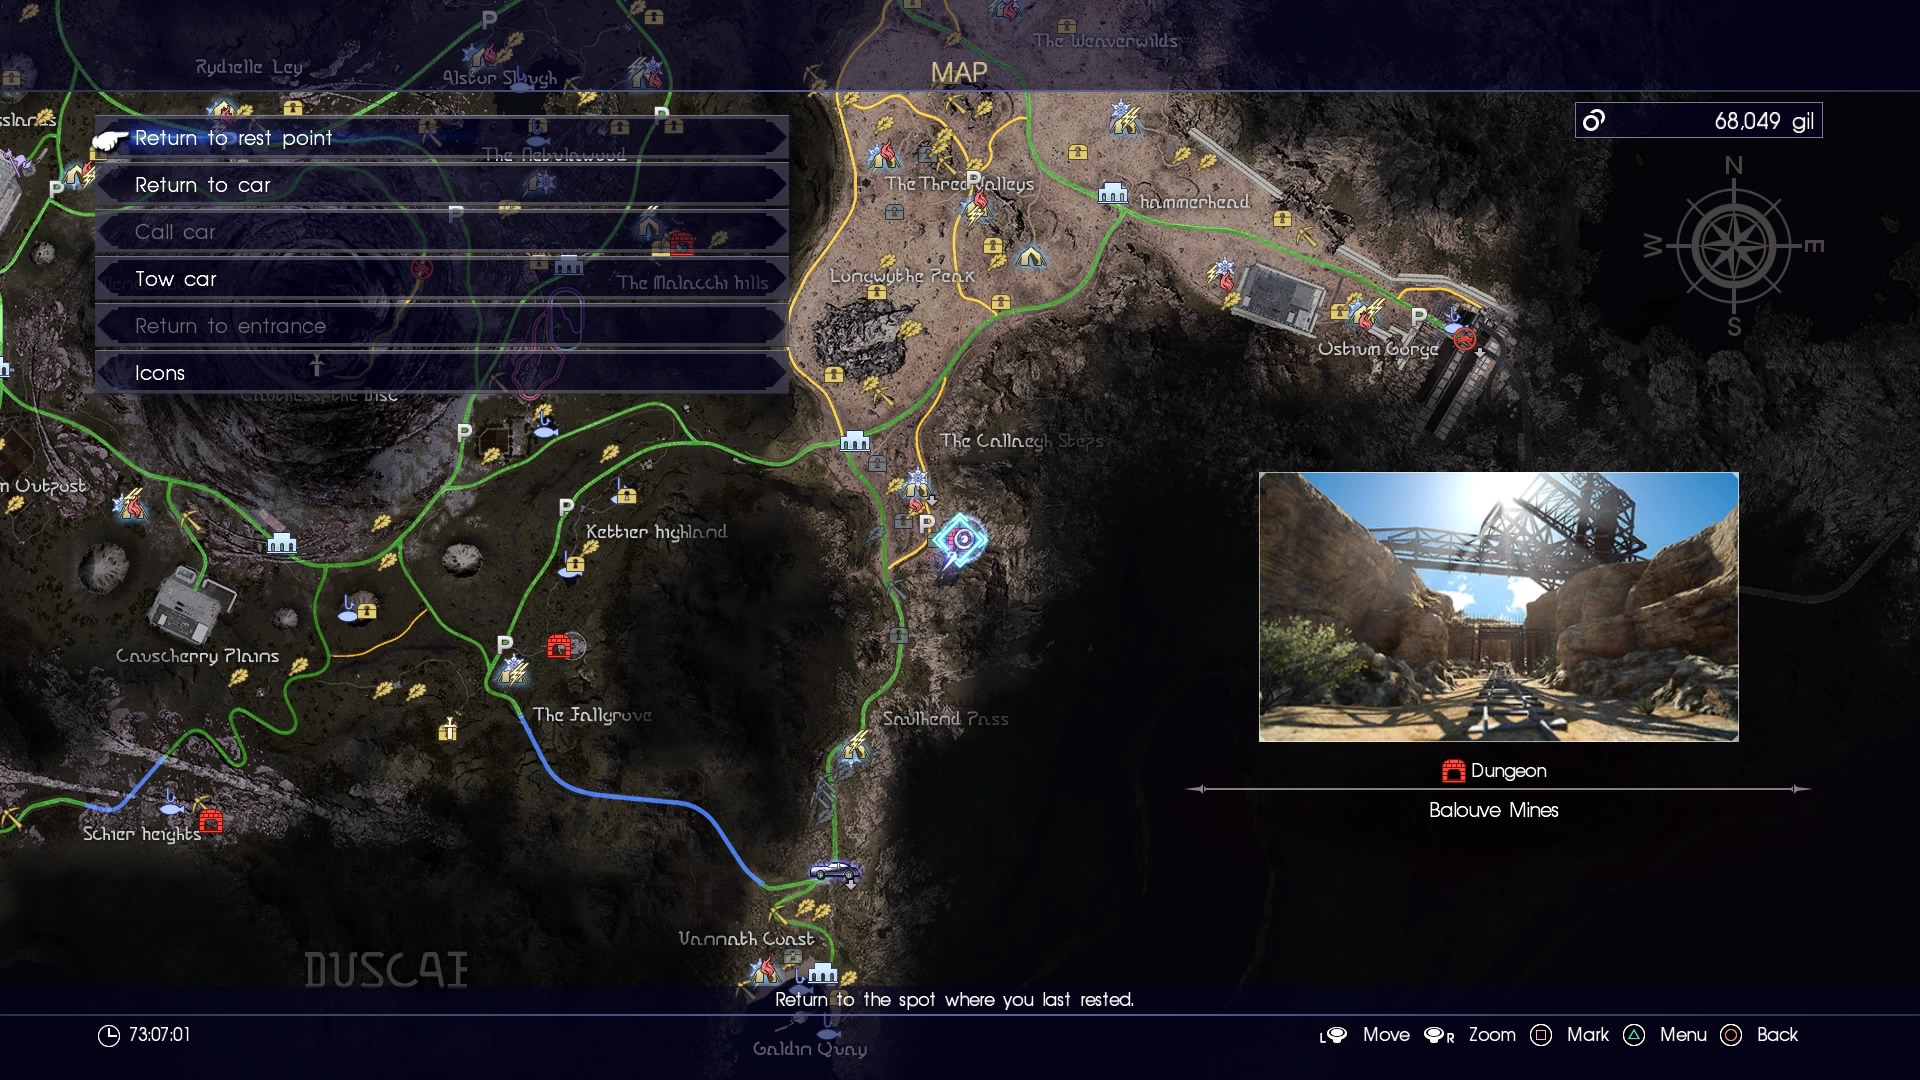 Final Fantasy XV Royal Arms Locations